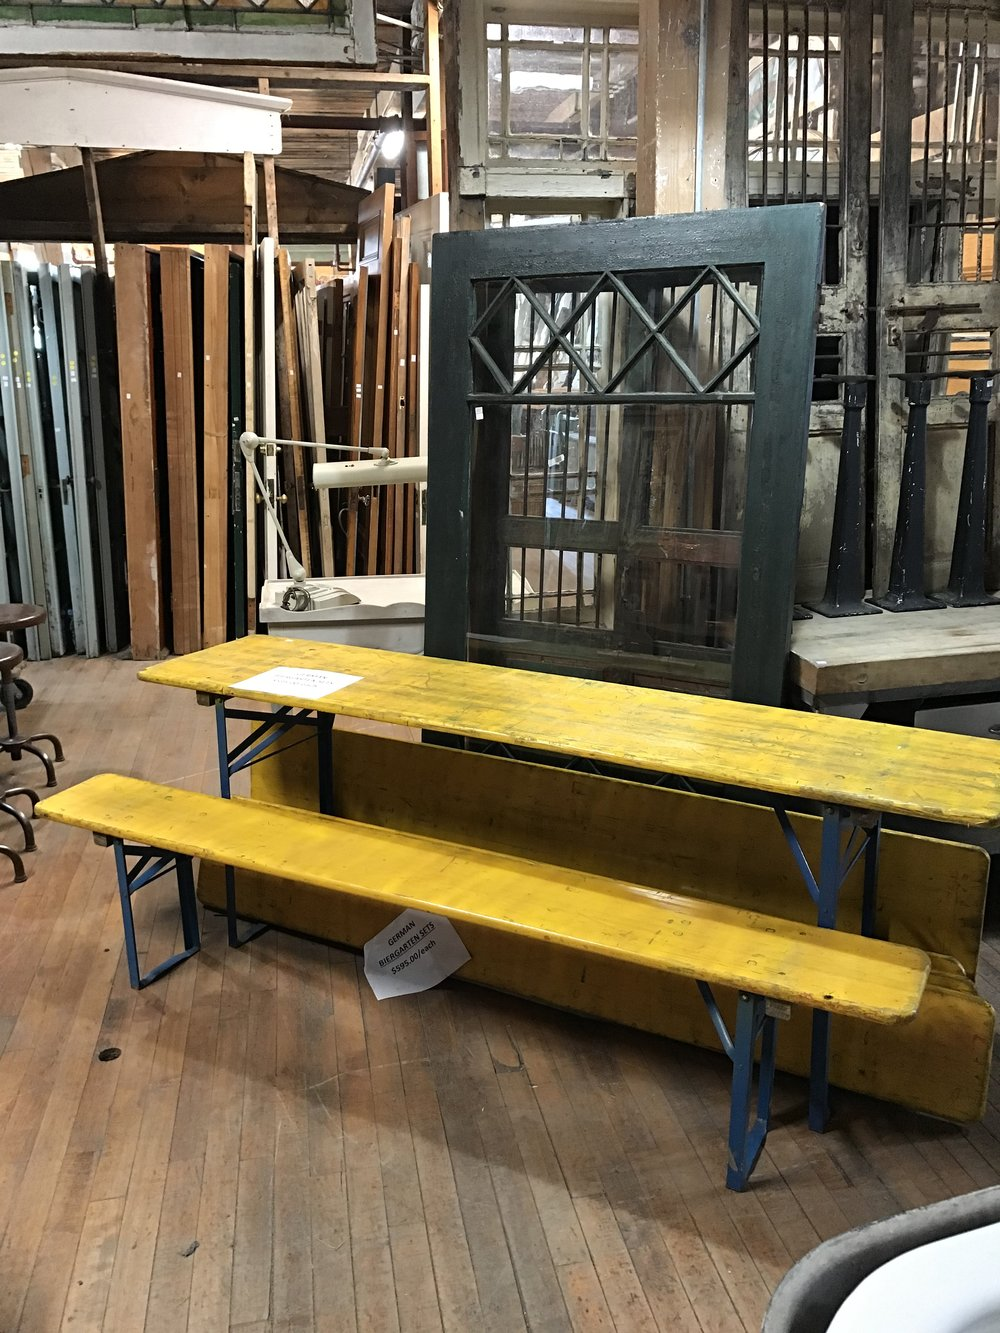 Folding Beer Garden Bench and Table Set